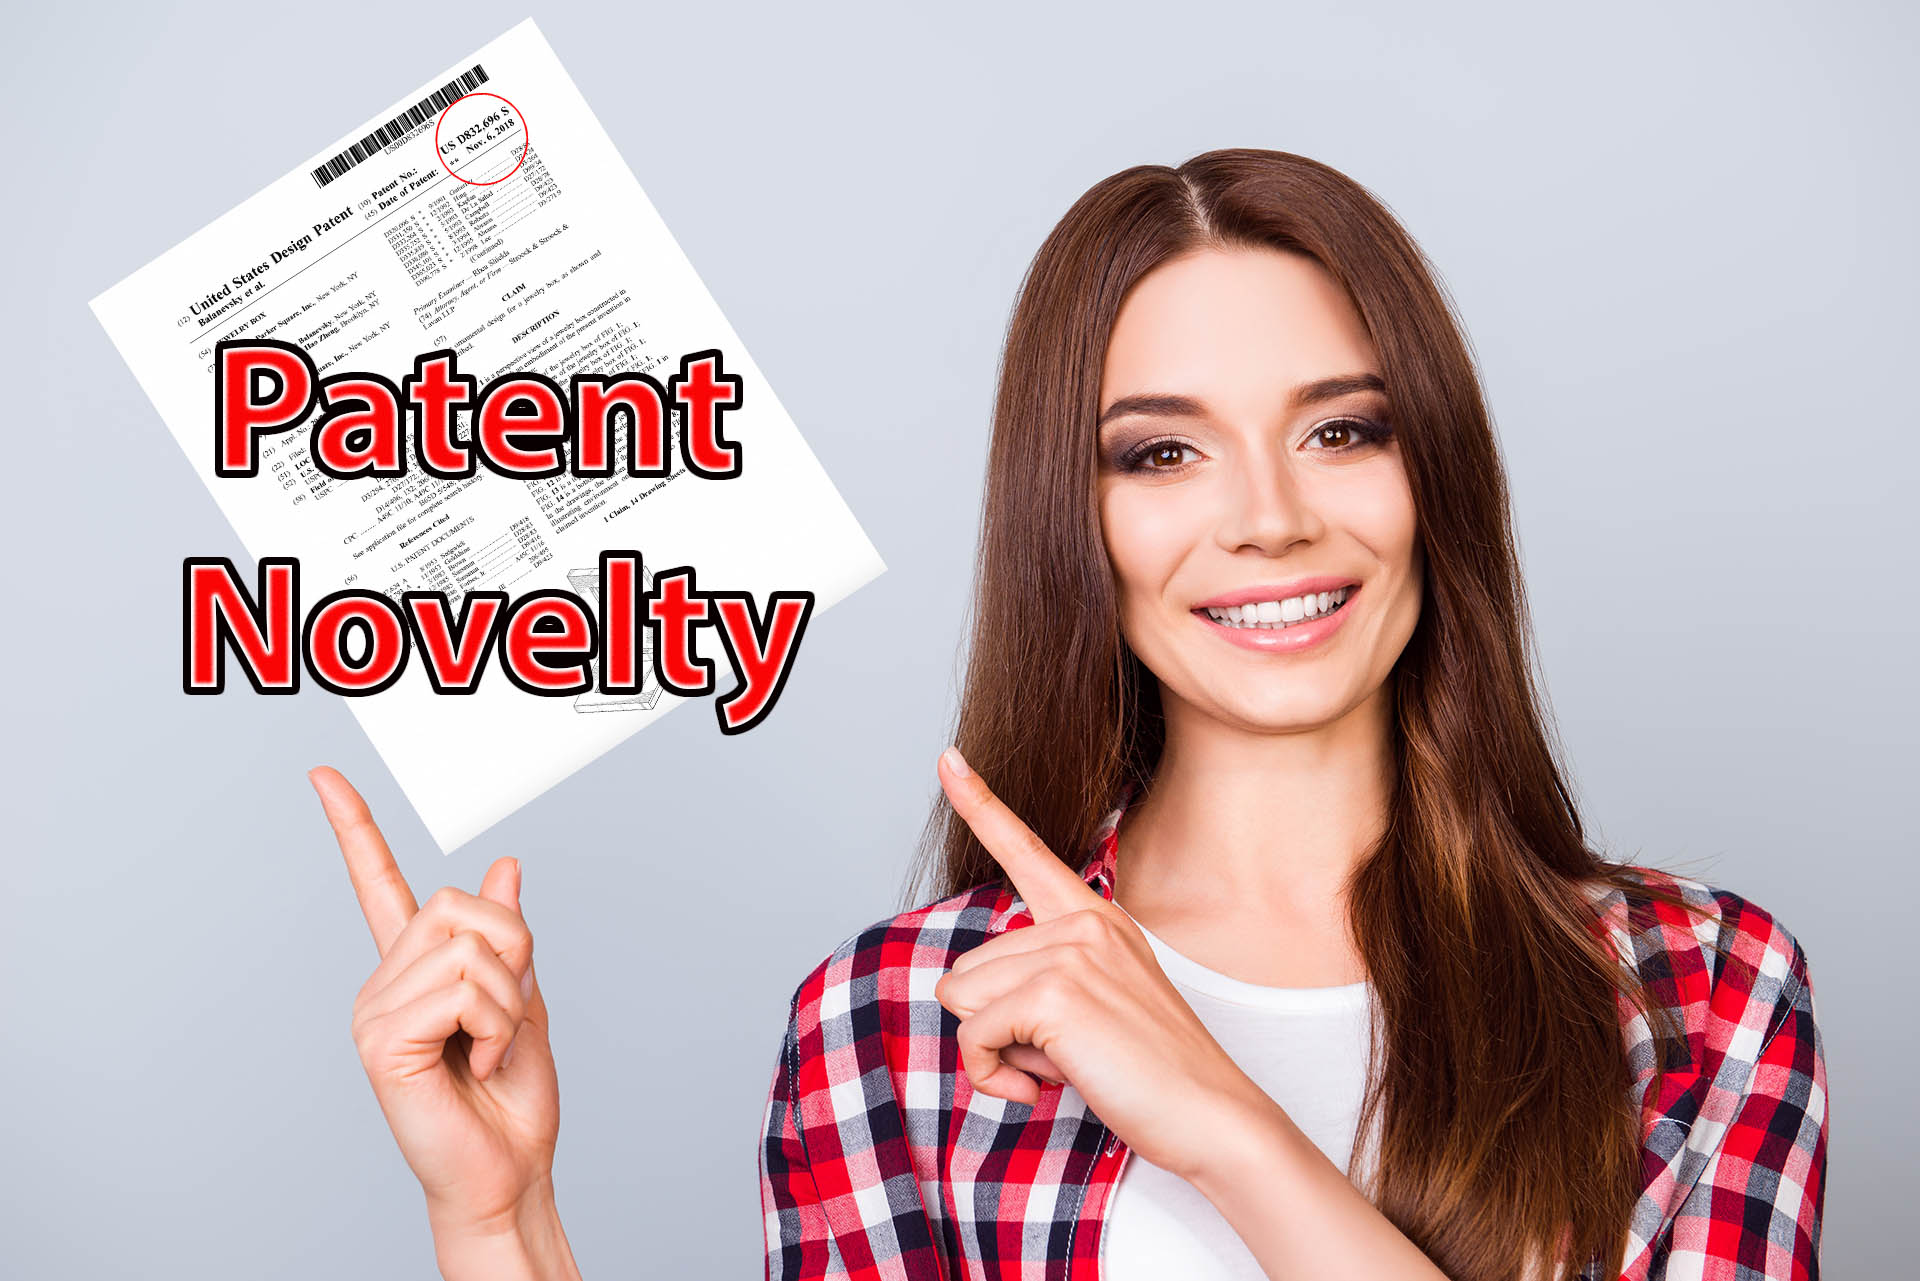 What is patent novelty?